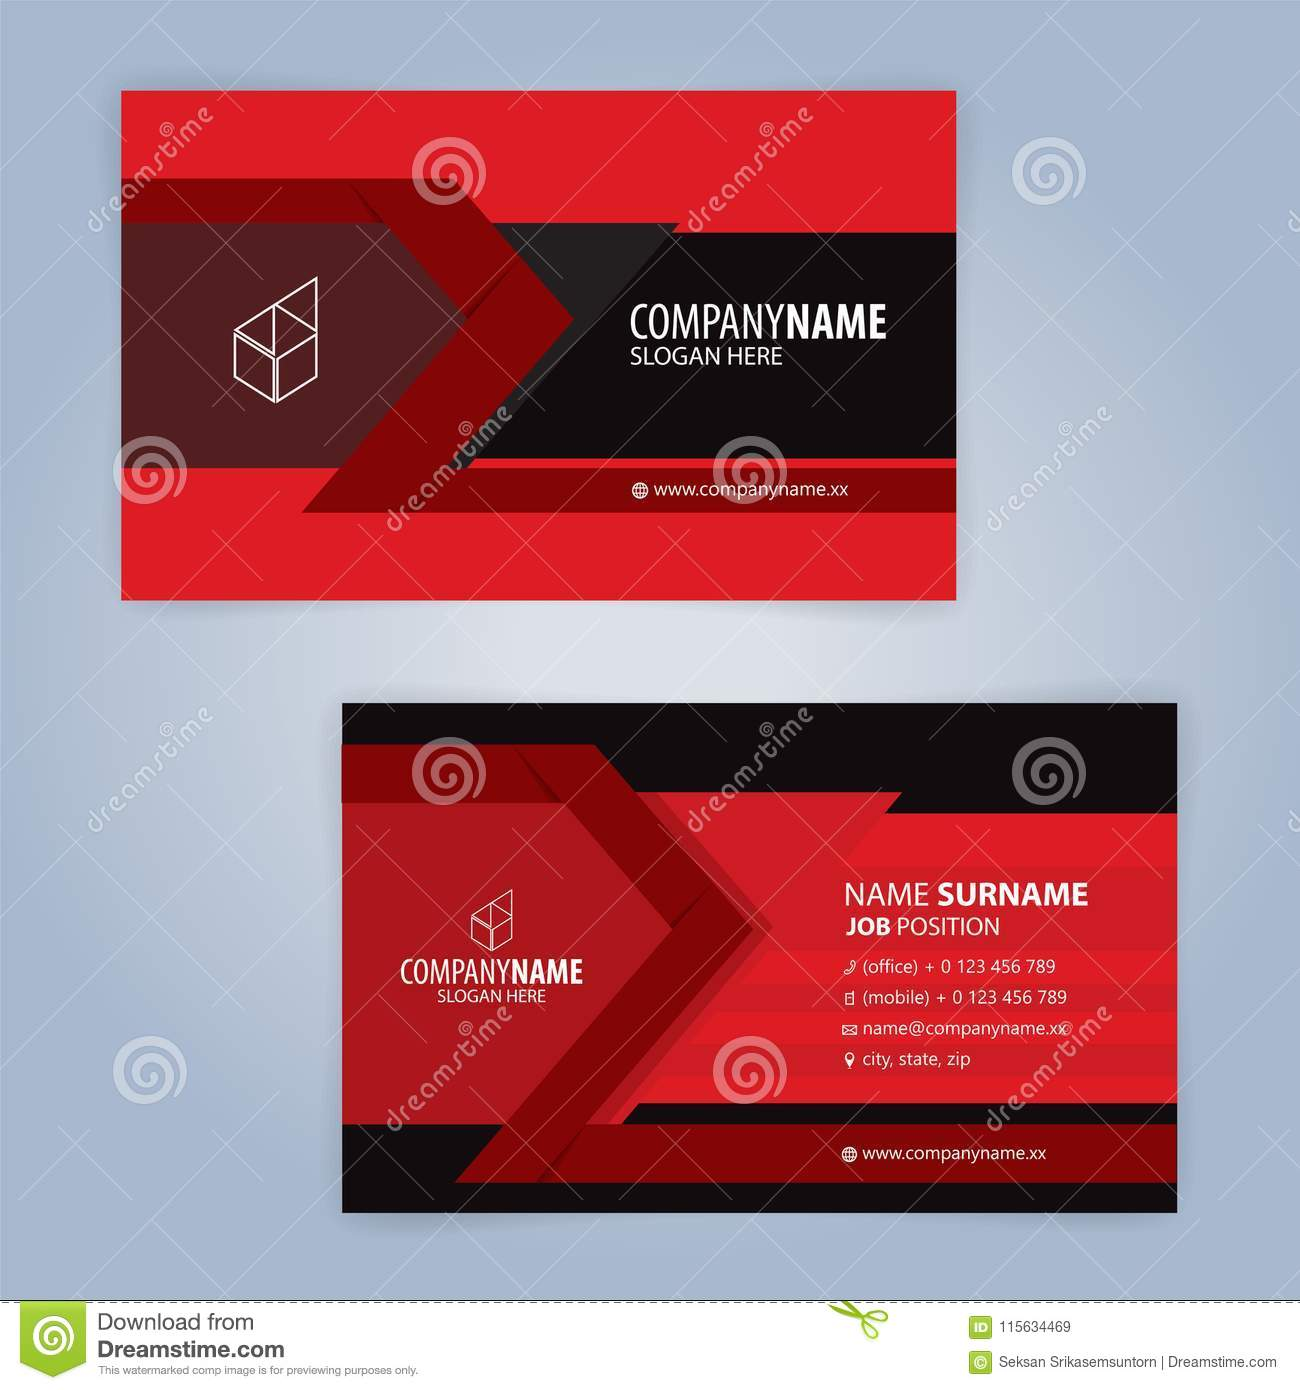 Red and black modern business card template stock vector red and black modern business card template illustration vector 10 accmission Image collections